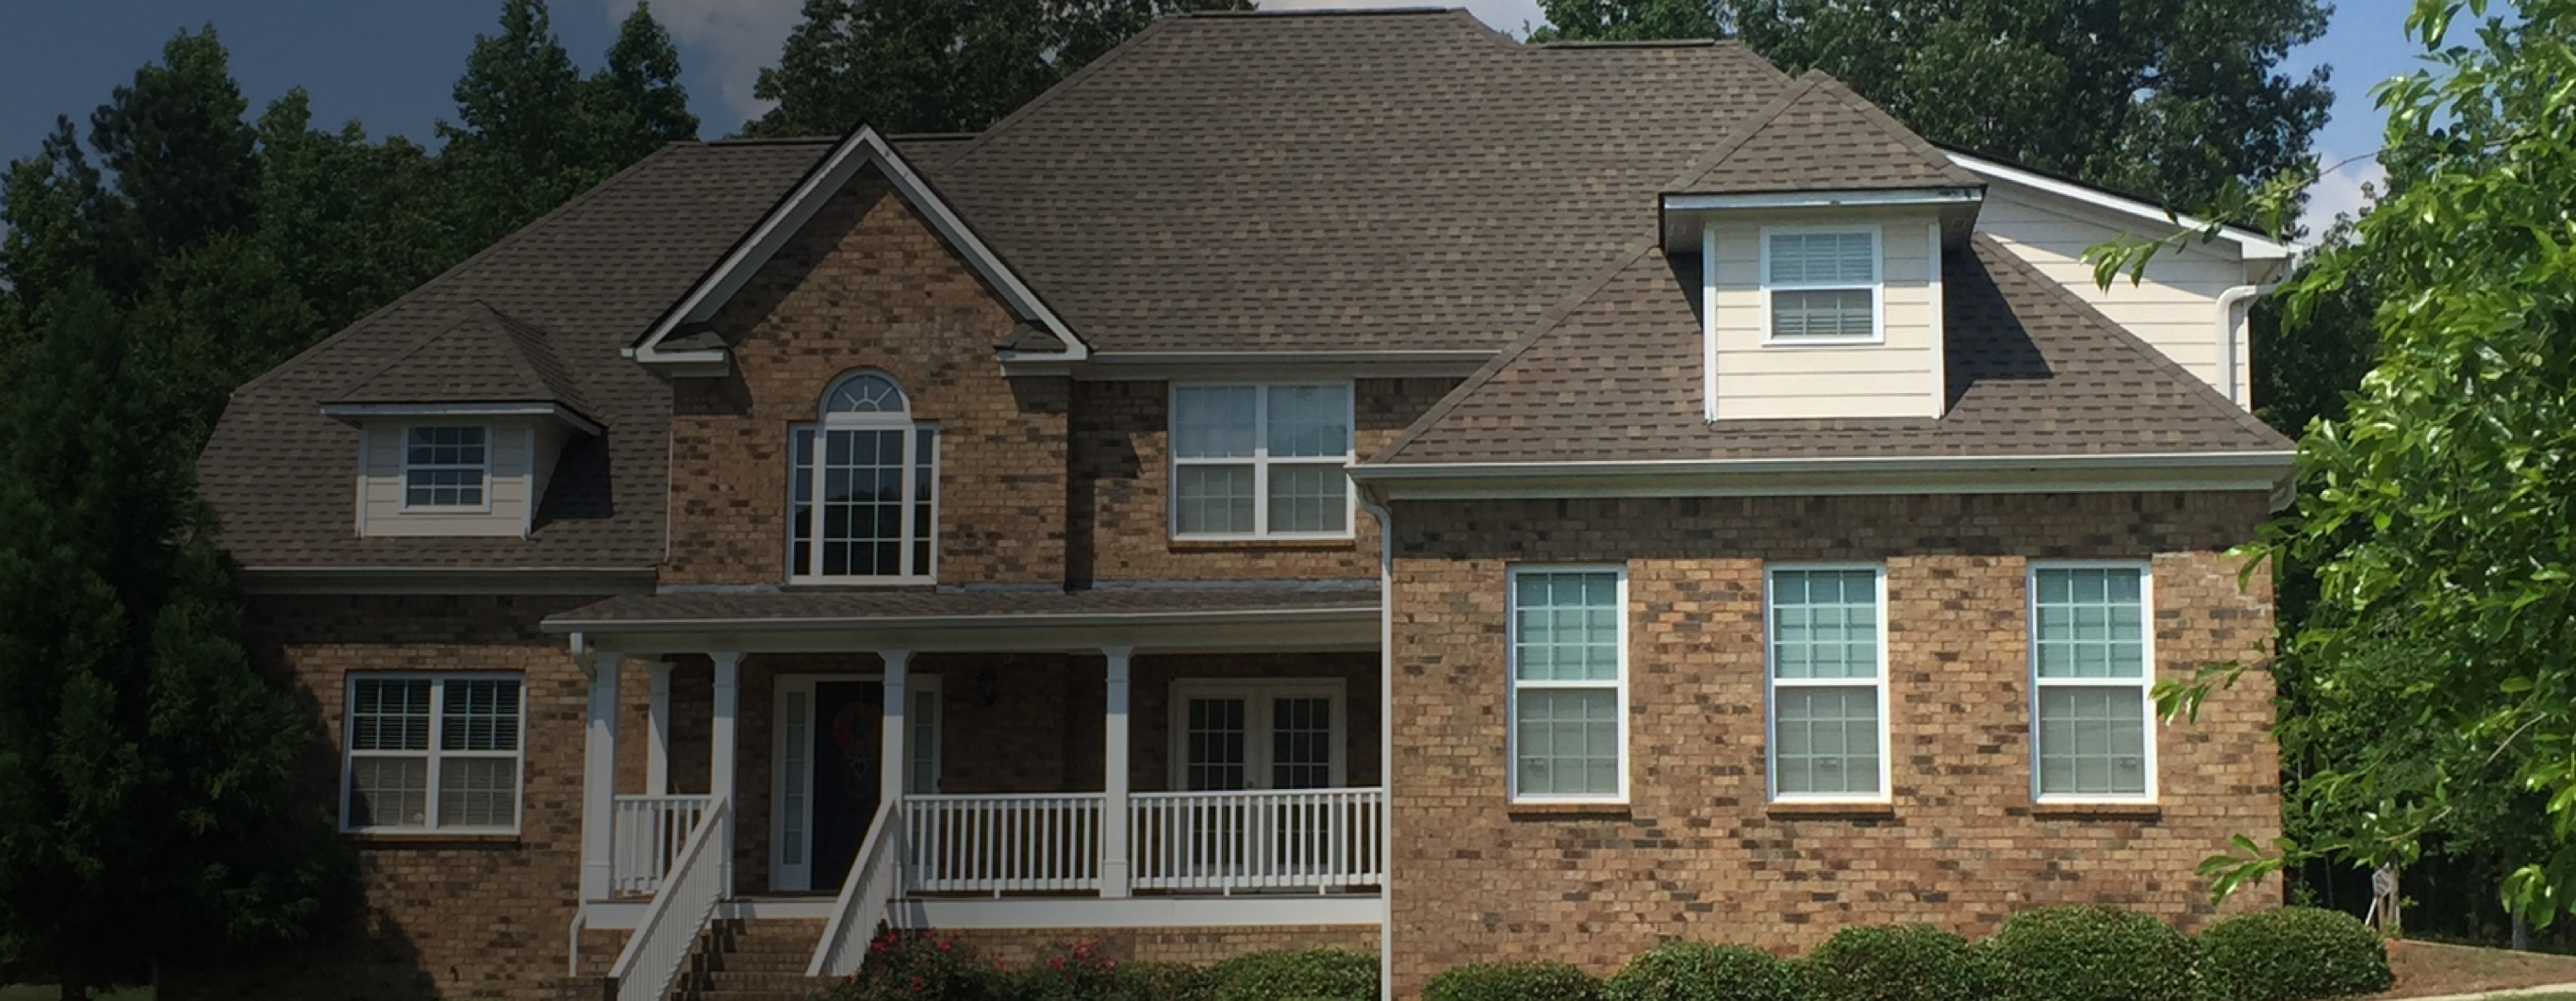 Roofing Athens Ga Residential Amp Commerical J Key Roofing